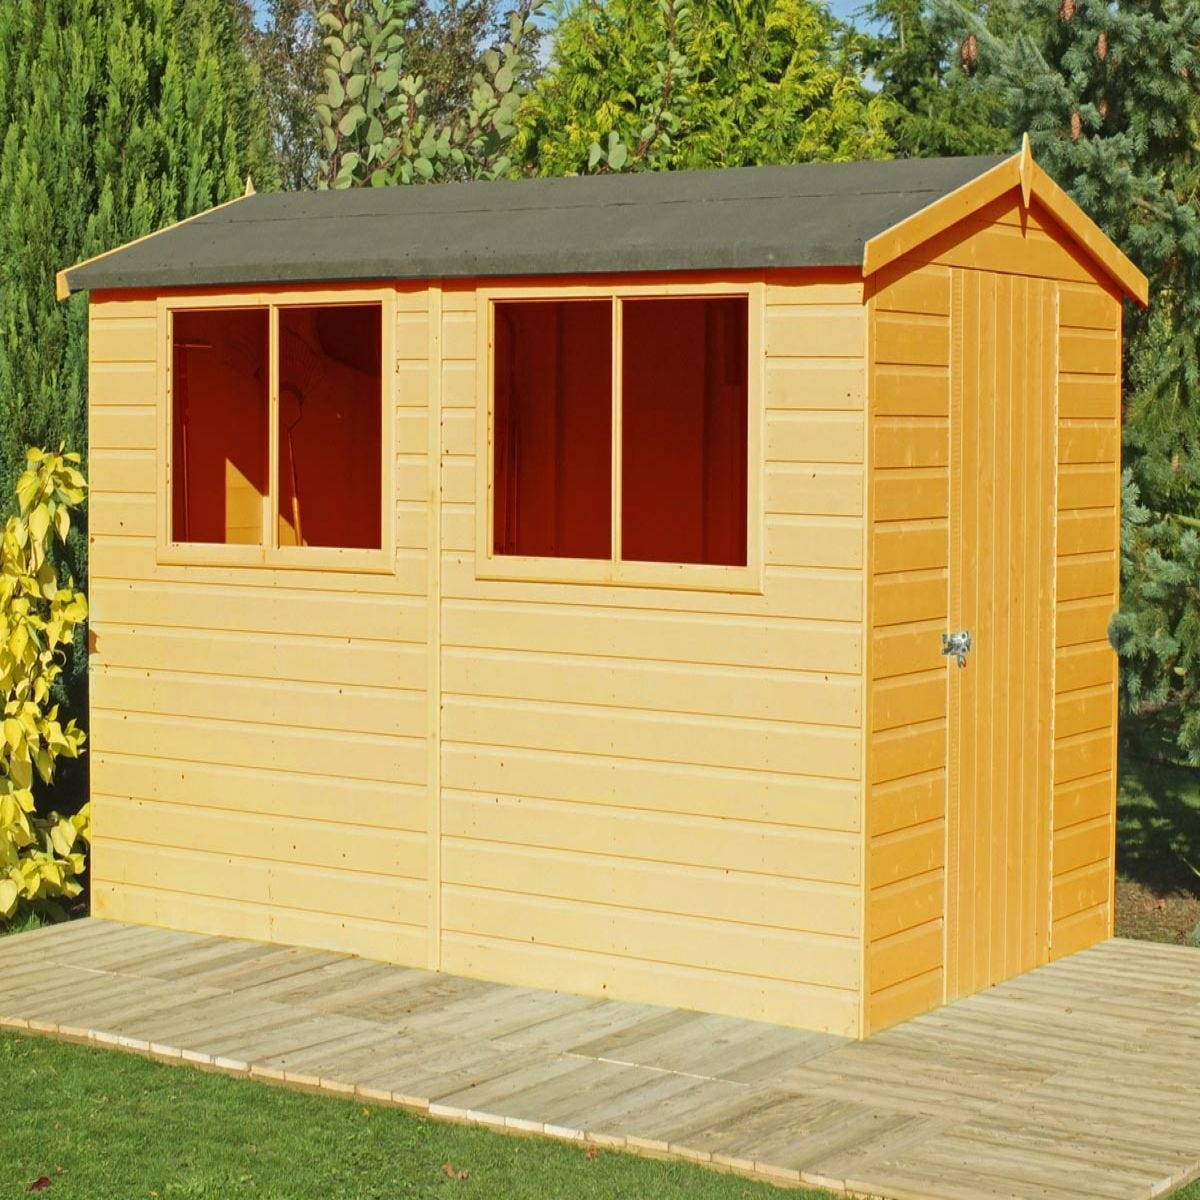 Shire Lewis Handmade Shed - 10ft x 8ft